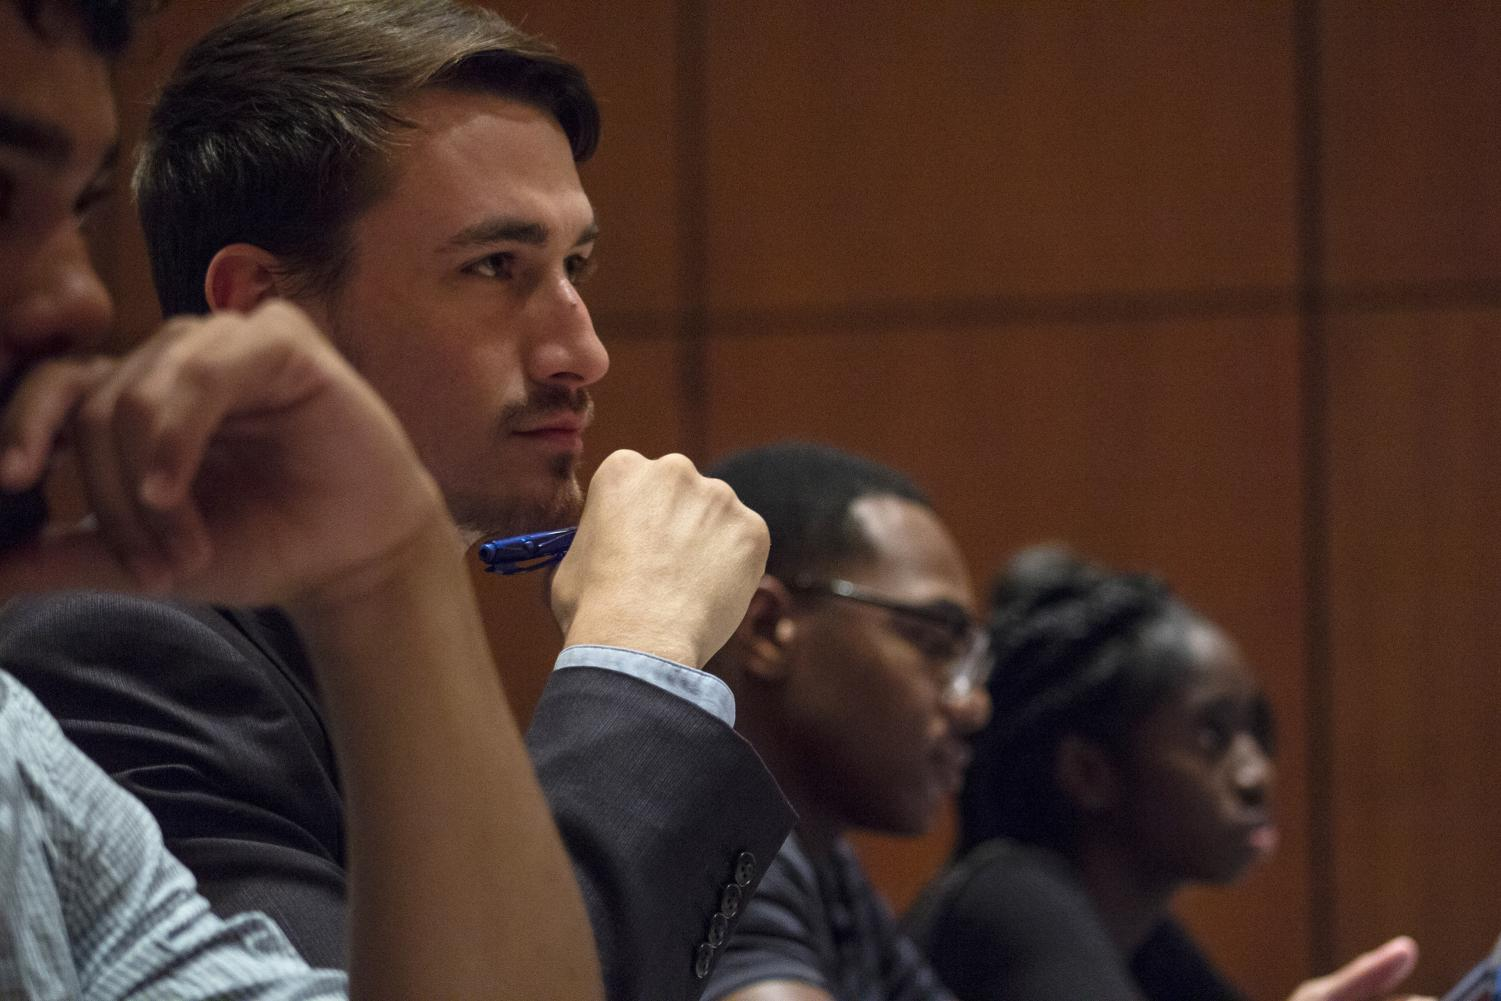 Trey Hentis, a senior majoring in mechanical engineering, listens during an undergraduate student government meeting, Tuesday, Oct. 30, 2018, inside the Student Center. (Isabel Miller | @IsabelMillerDE)